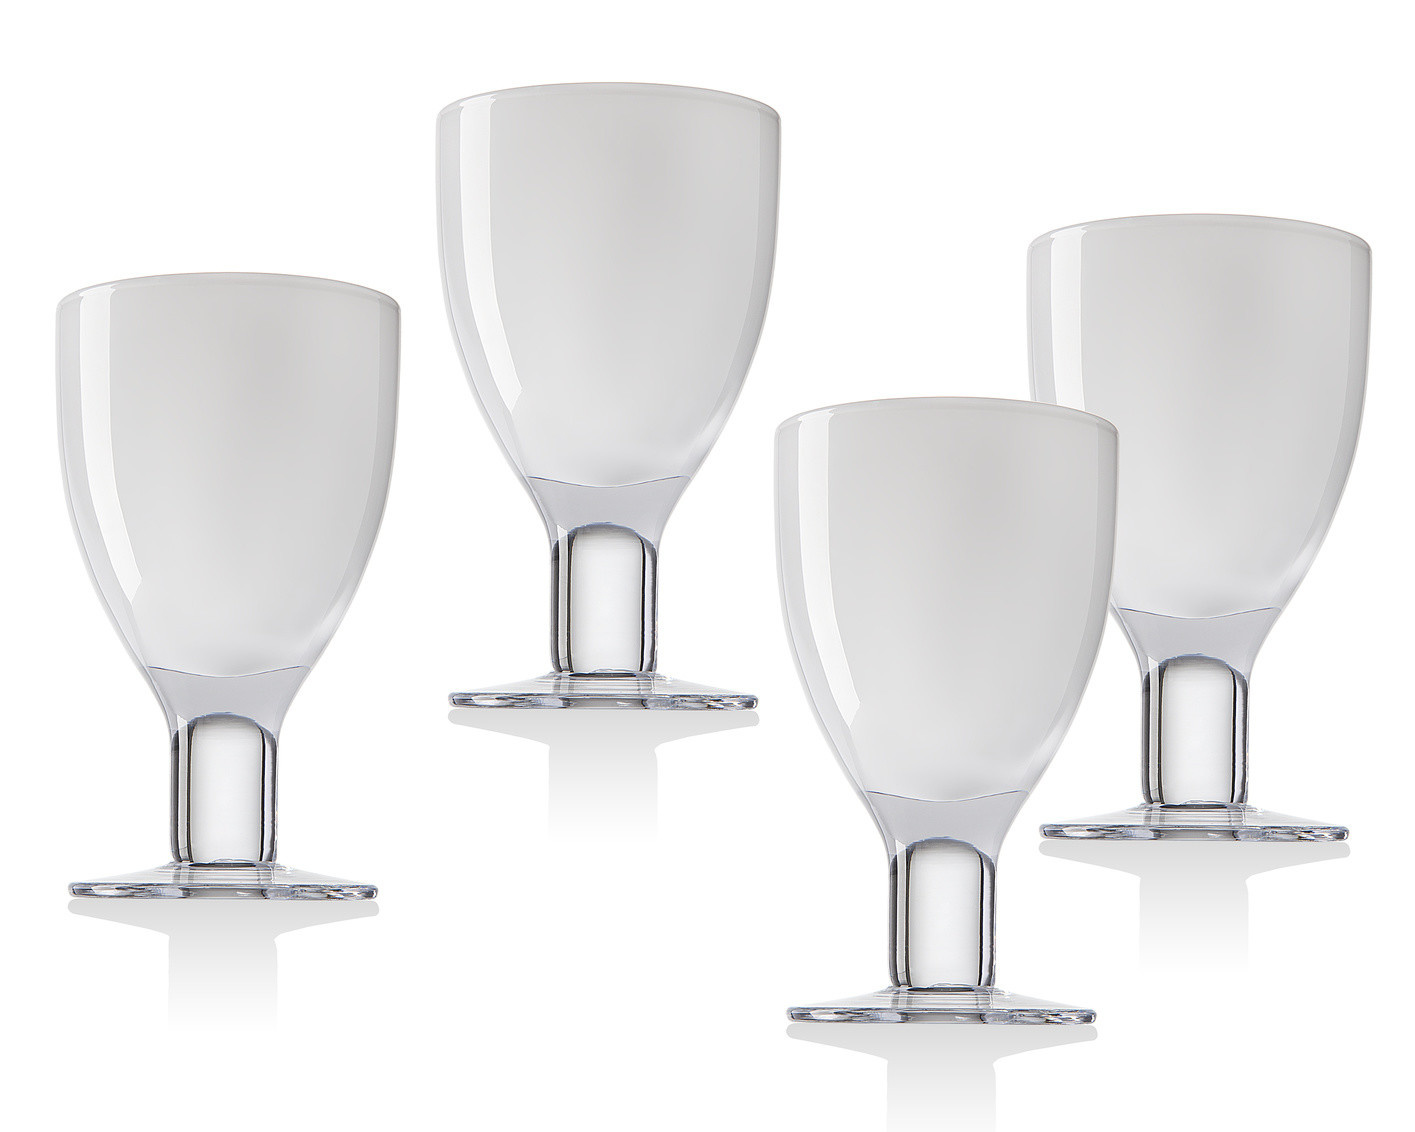 Galley White Goblets S/4